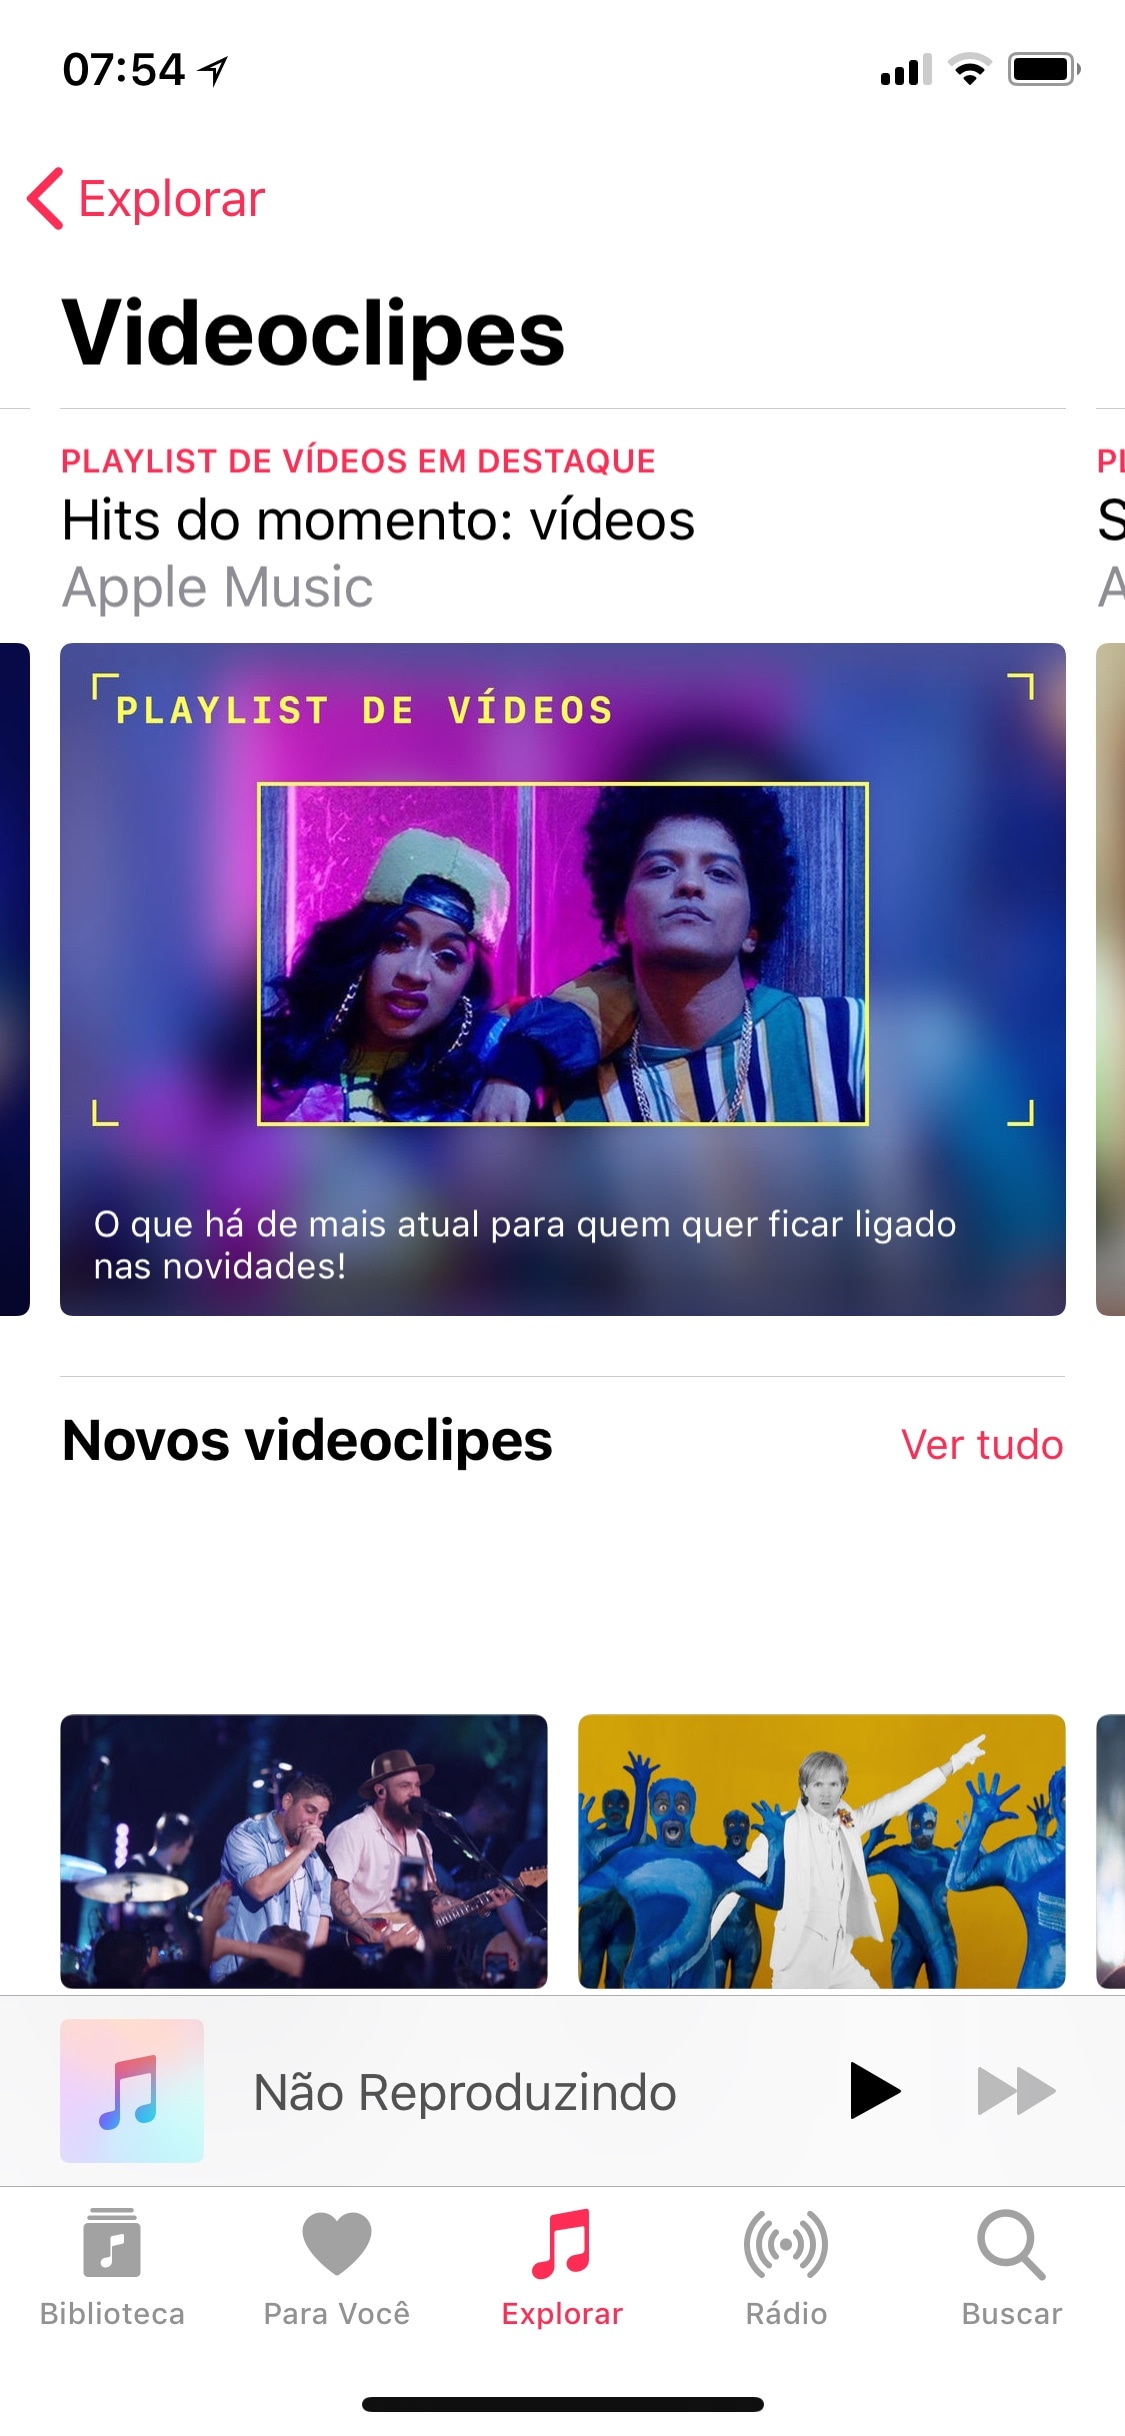 Apple Music Videoclipes